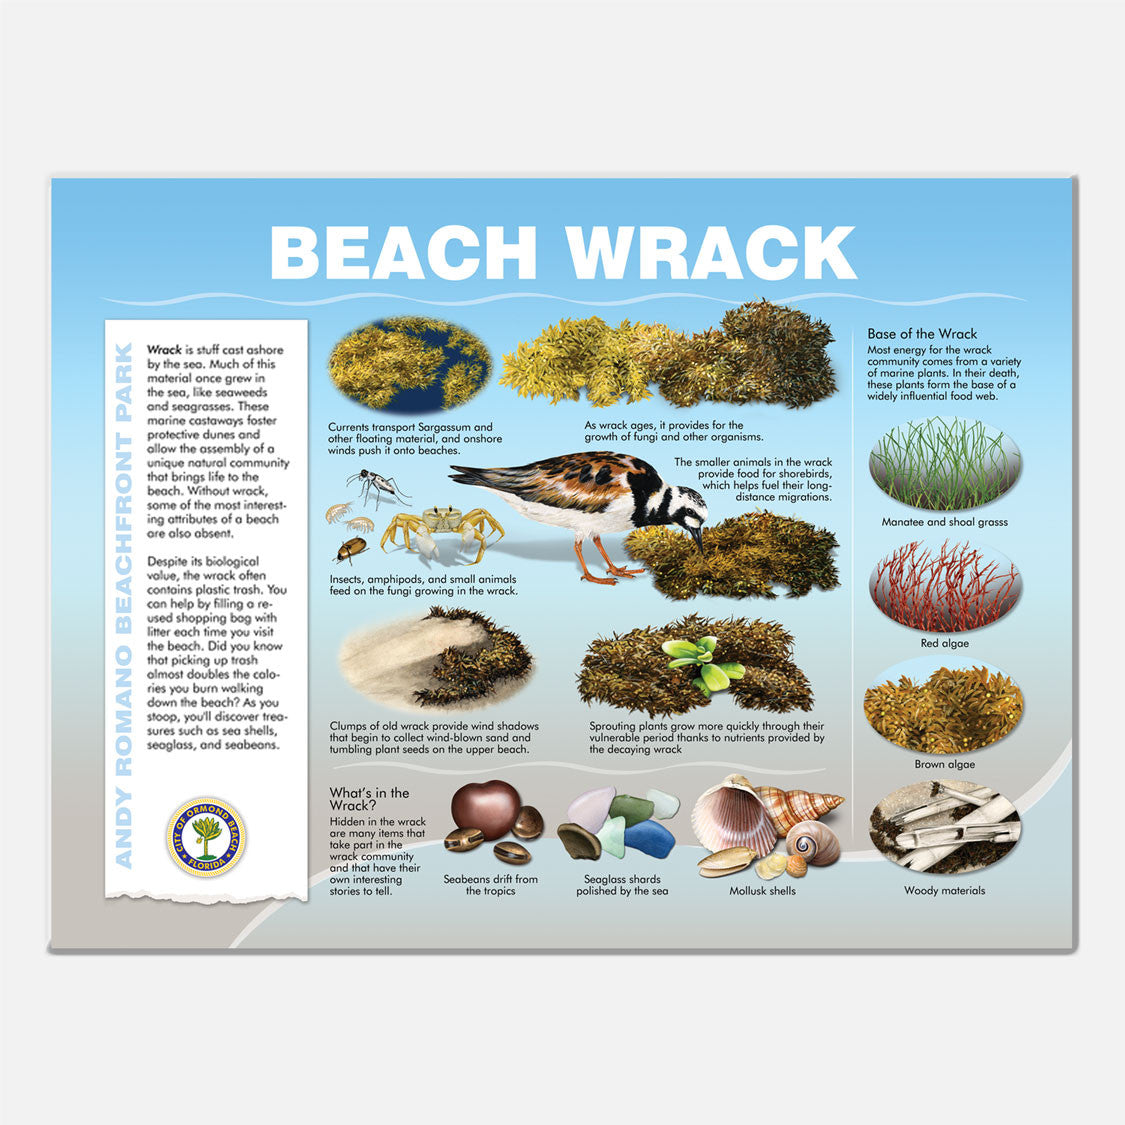 This beautifully illustrated educational display describes the beach wrack at Andy Romano Beachfront Park, Ormond Beach, Florida.